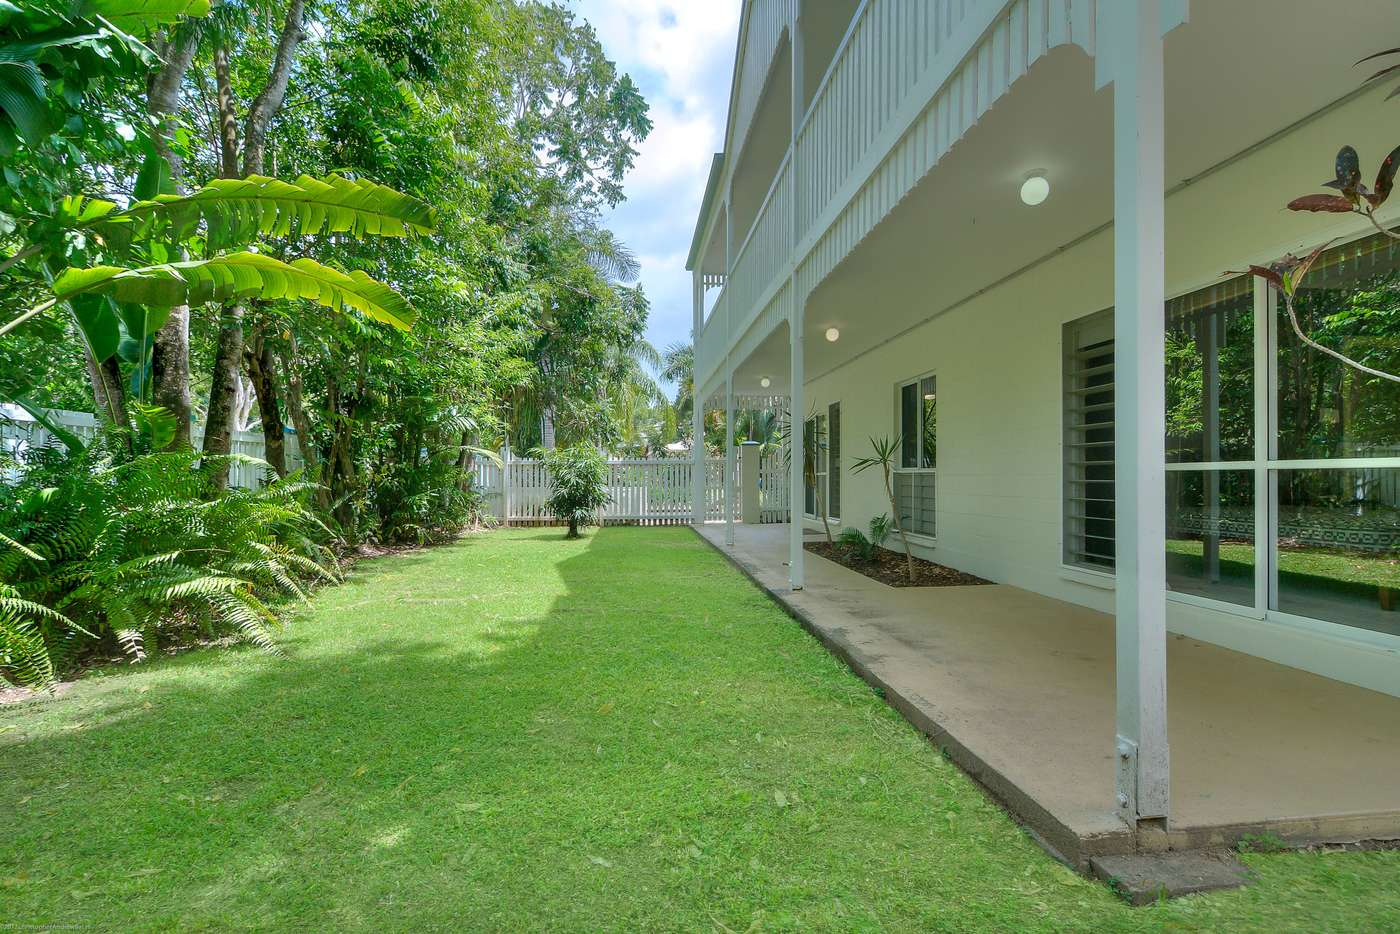 Main view of Homely apartment listing, 1/32 Mudlo Street, Port Douglas QLD 4877